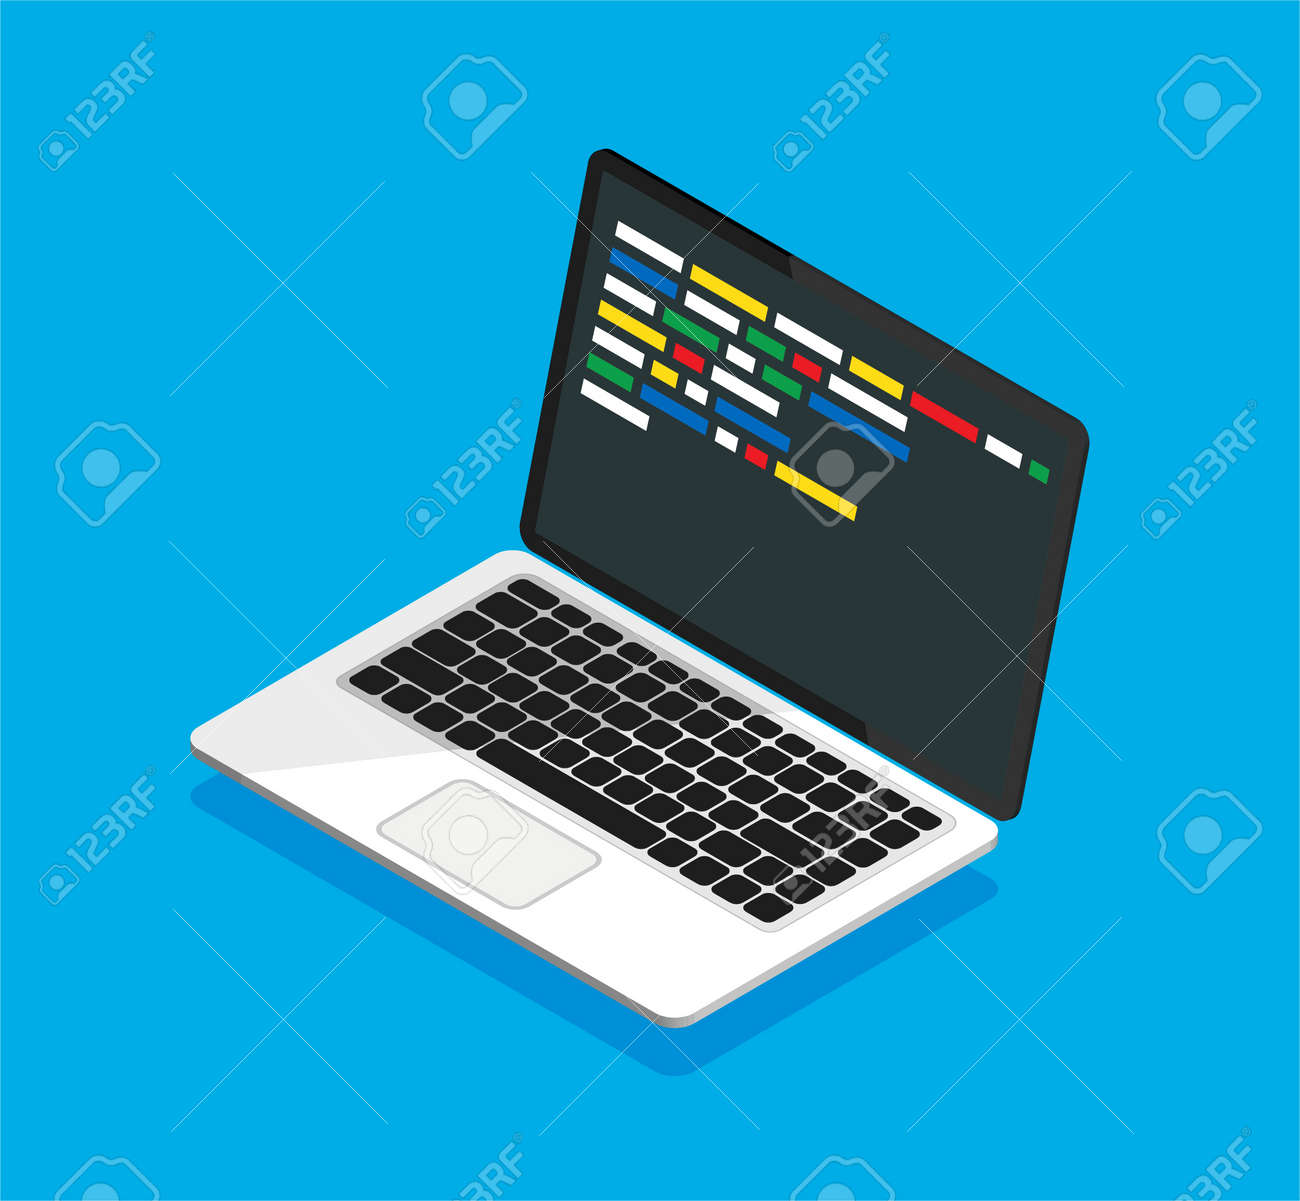 Isometric laptop with code on a display. Web developer, design, programming. Coding concept. Isolated vector illustration. - 167217064